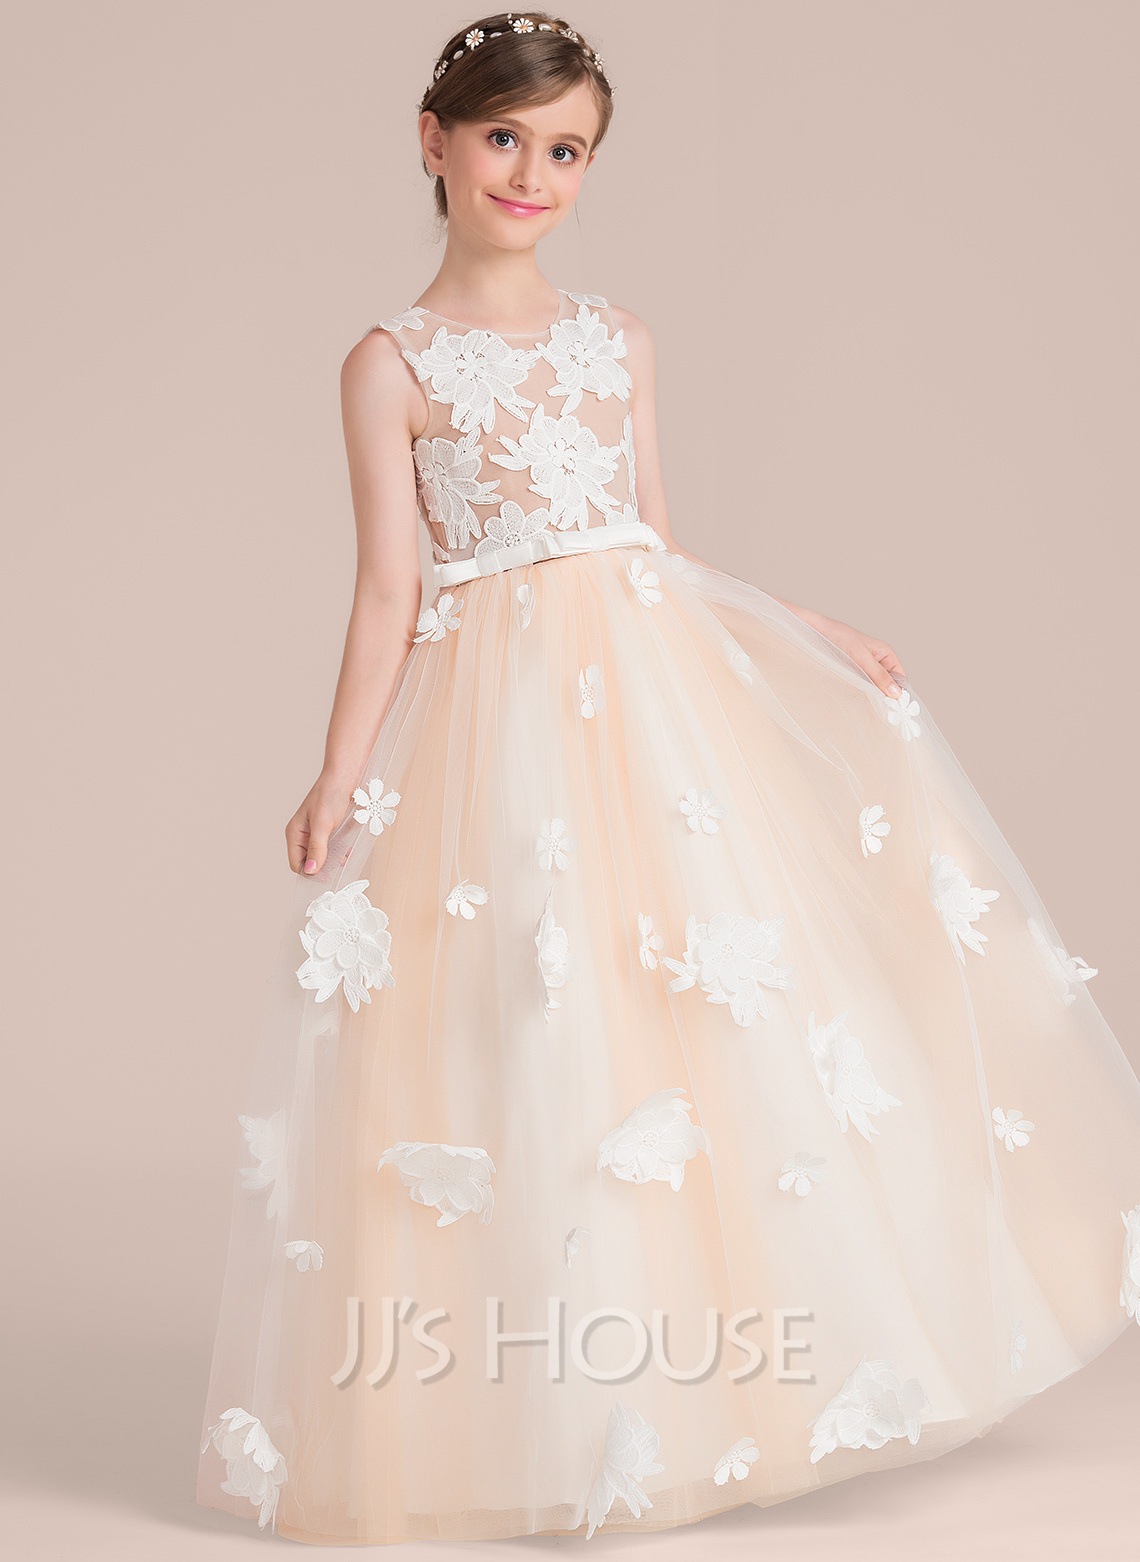 c5bcf950d Ball Gown Floor-length Flower Girl Dress - Satin/Tulle/Lace Sleeveless  Scoop. Loading zoom